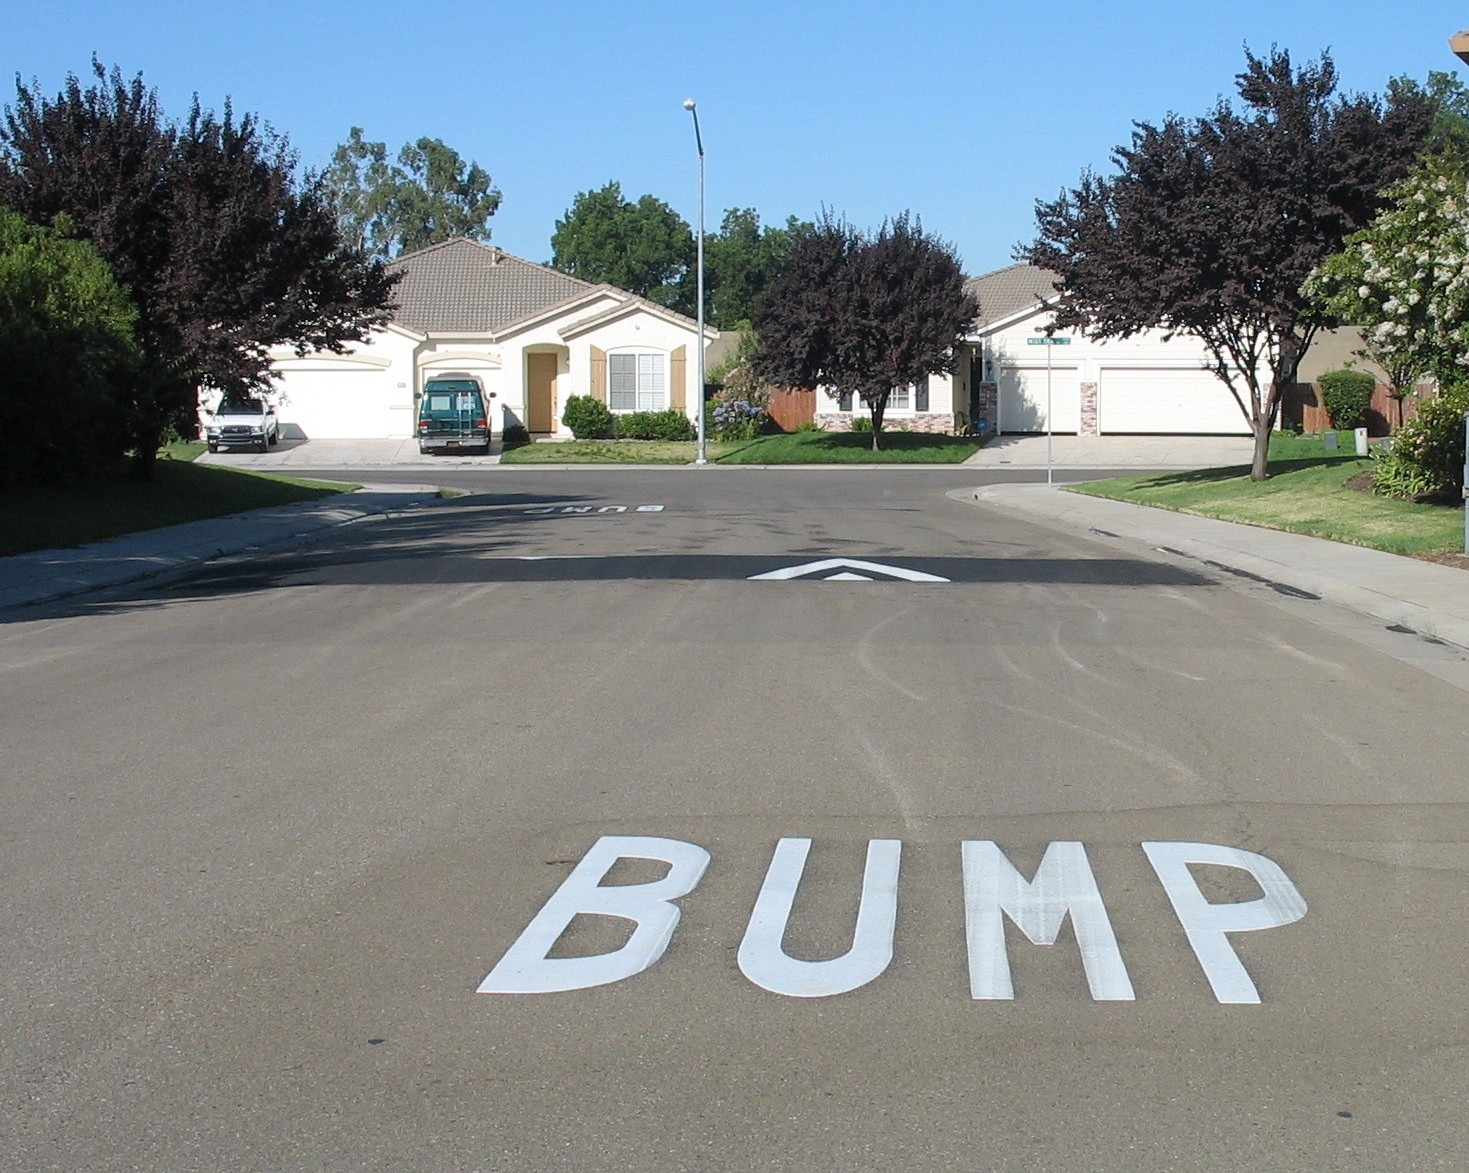 Speed Hump with Bump Legend available through Expedited Program